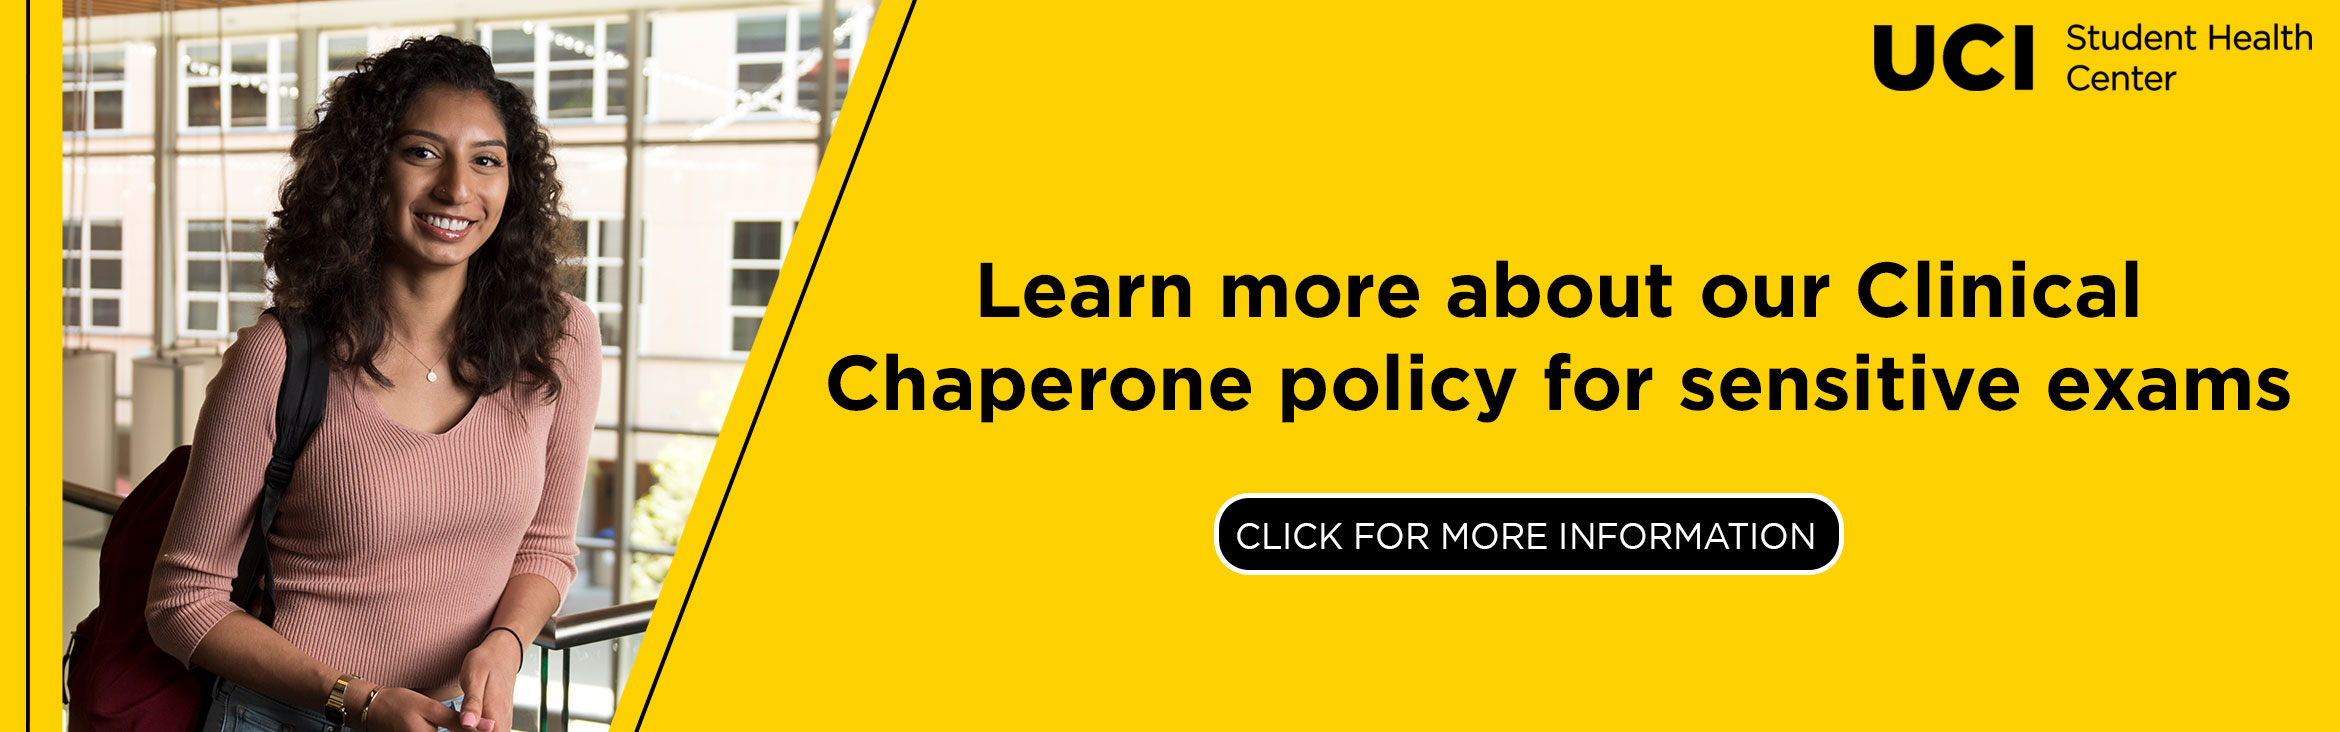 Learn more about our clinical chaperone policy for sensitive exams.  Click for more information.